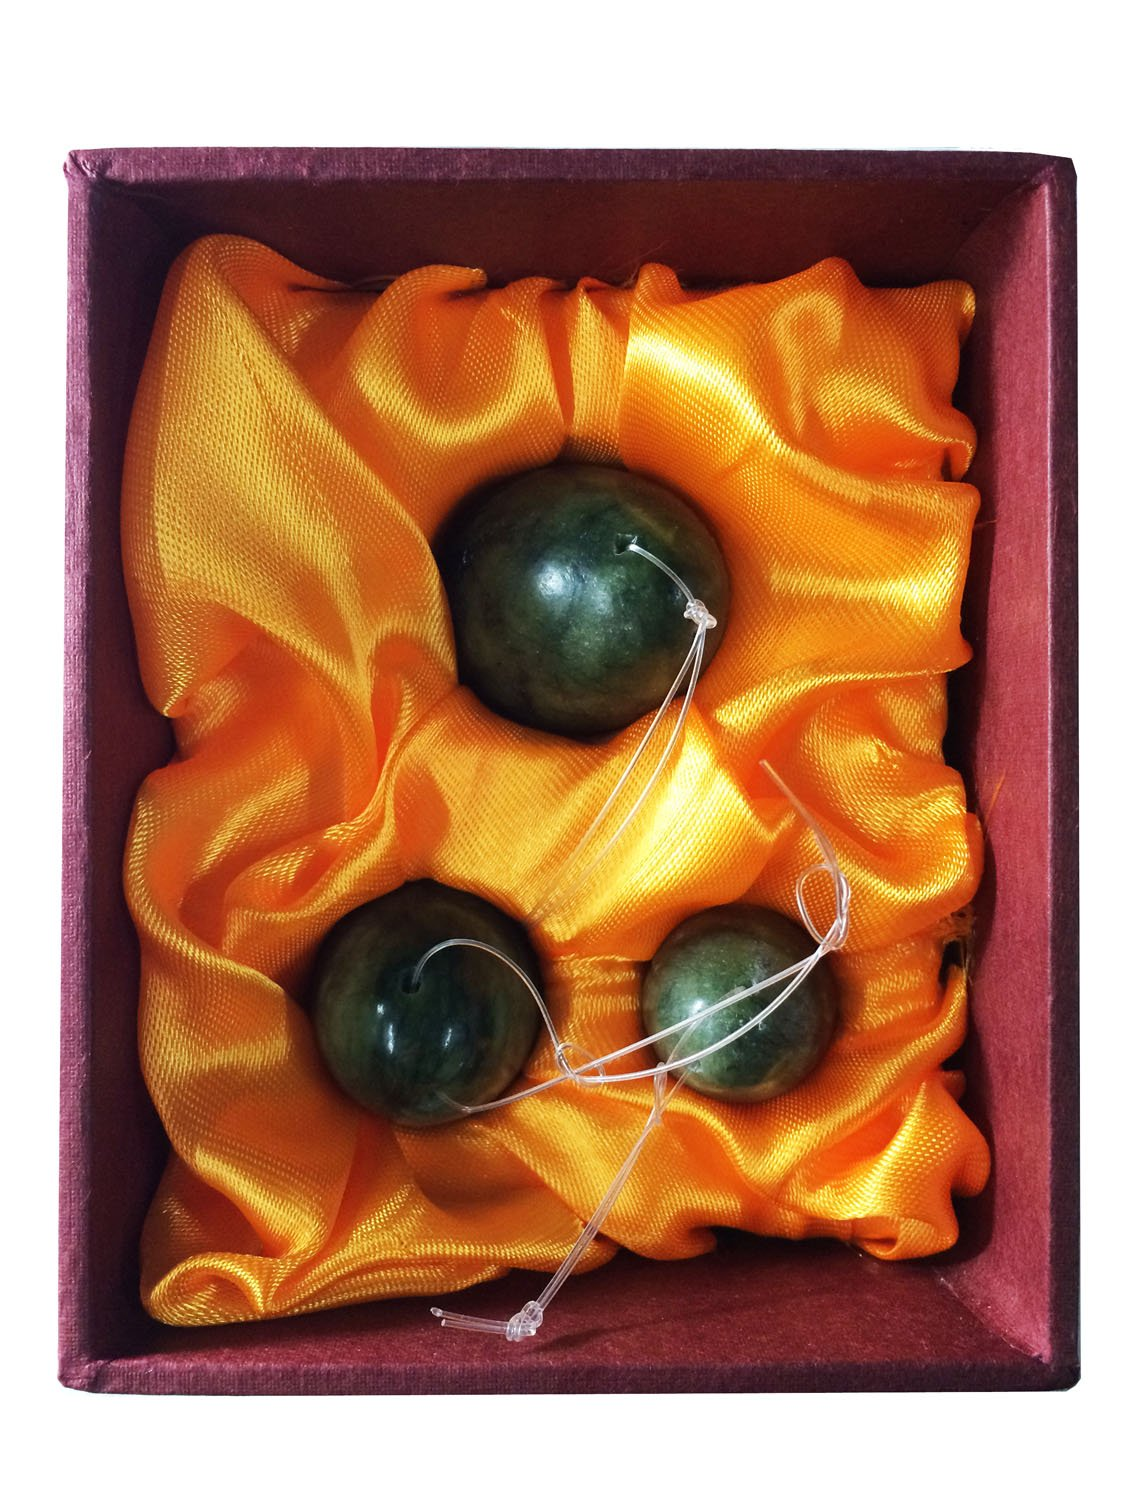 Jade Eggs Set of 3 for Training Pelvic Floor Muscles to Gain Bladder Control,with Instruction, Pre-drilled,Made of Natural Stone, Most Affordable Kegel Eggs Set (Set of 3 Jade Eggs)